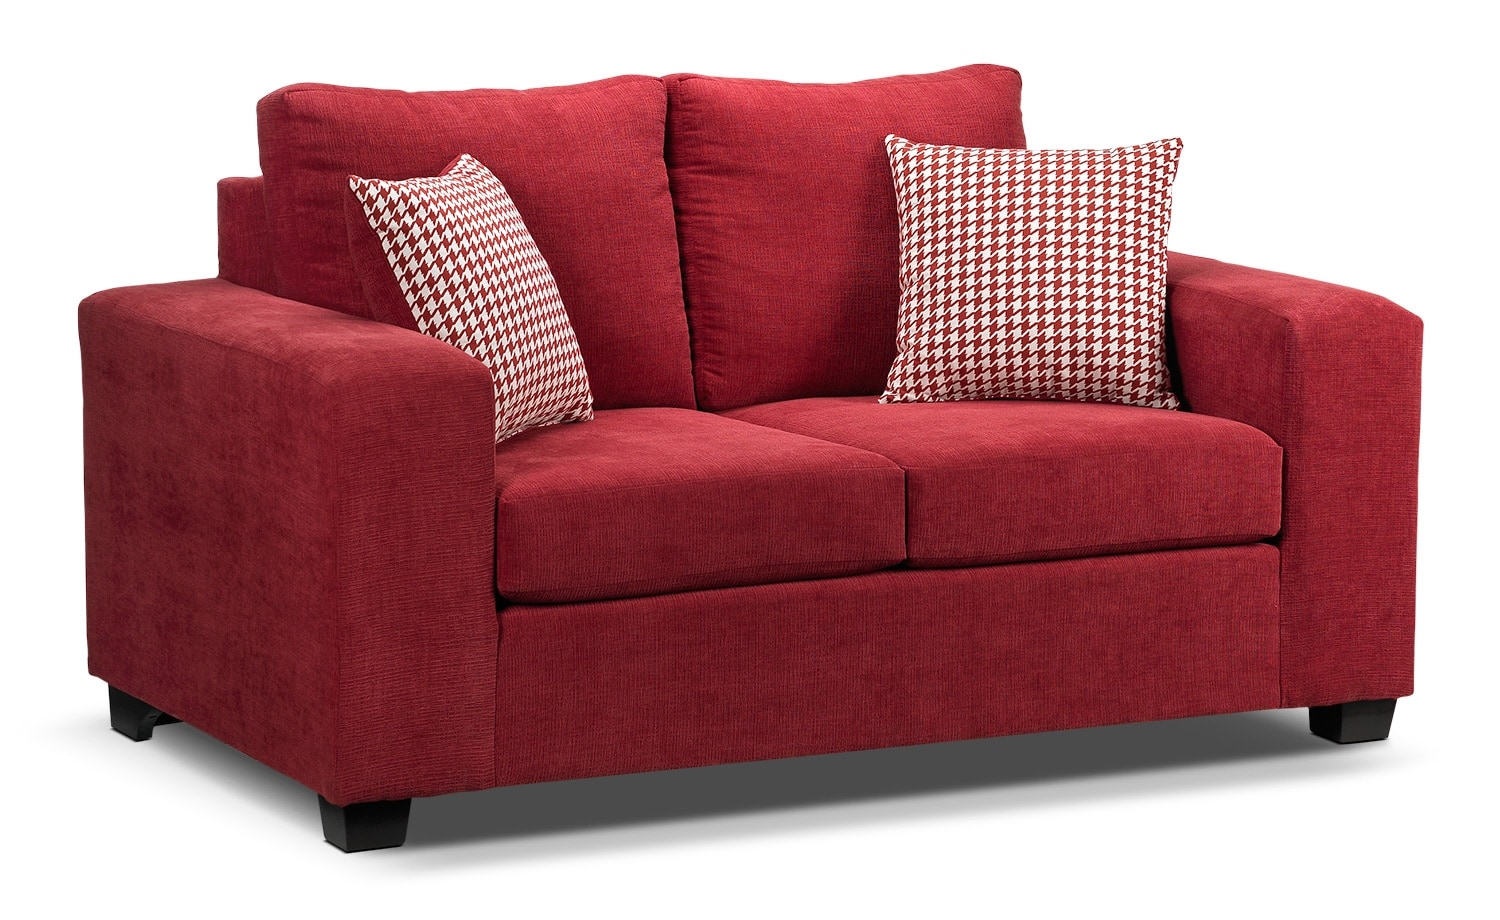 Living Room Furniture - Fava Loveseat - Red